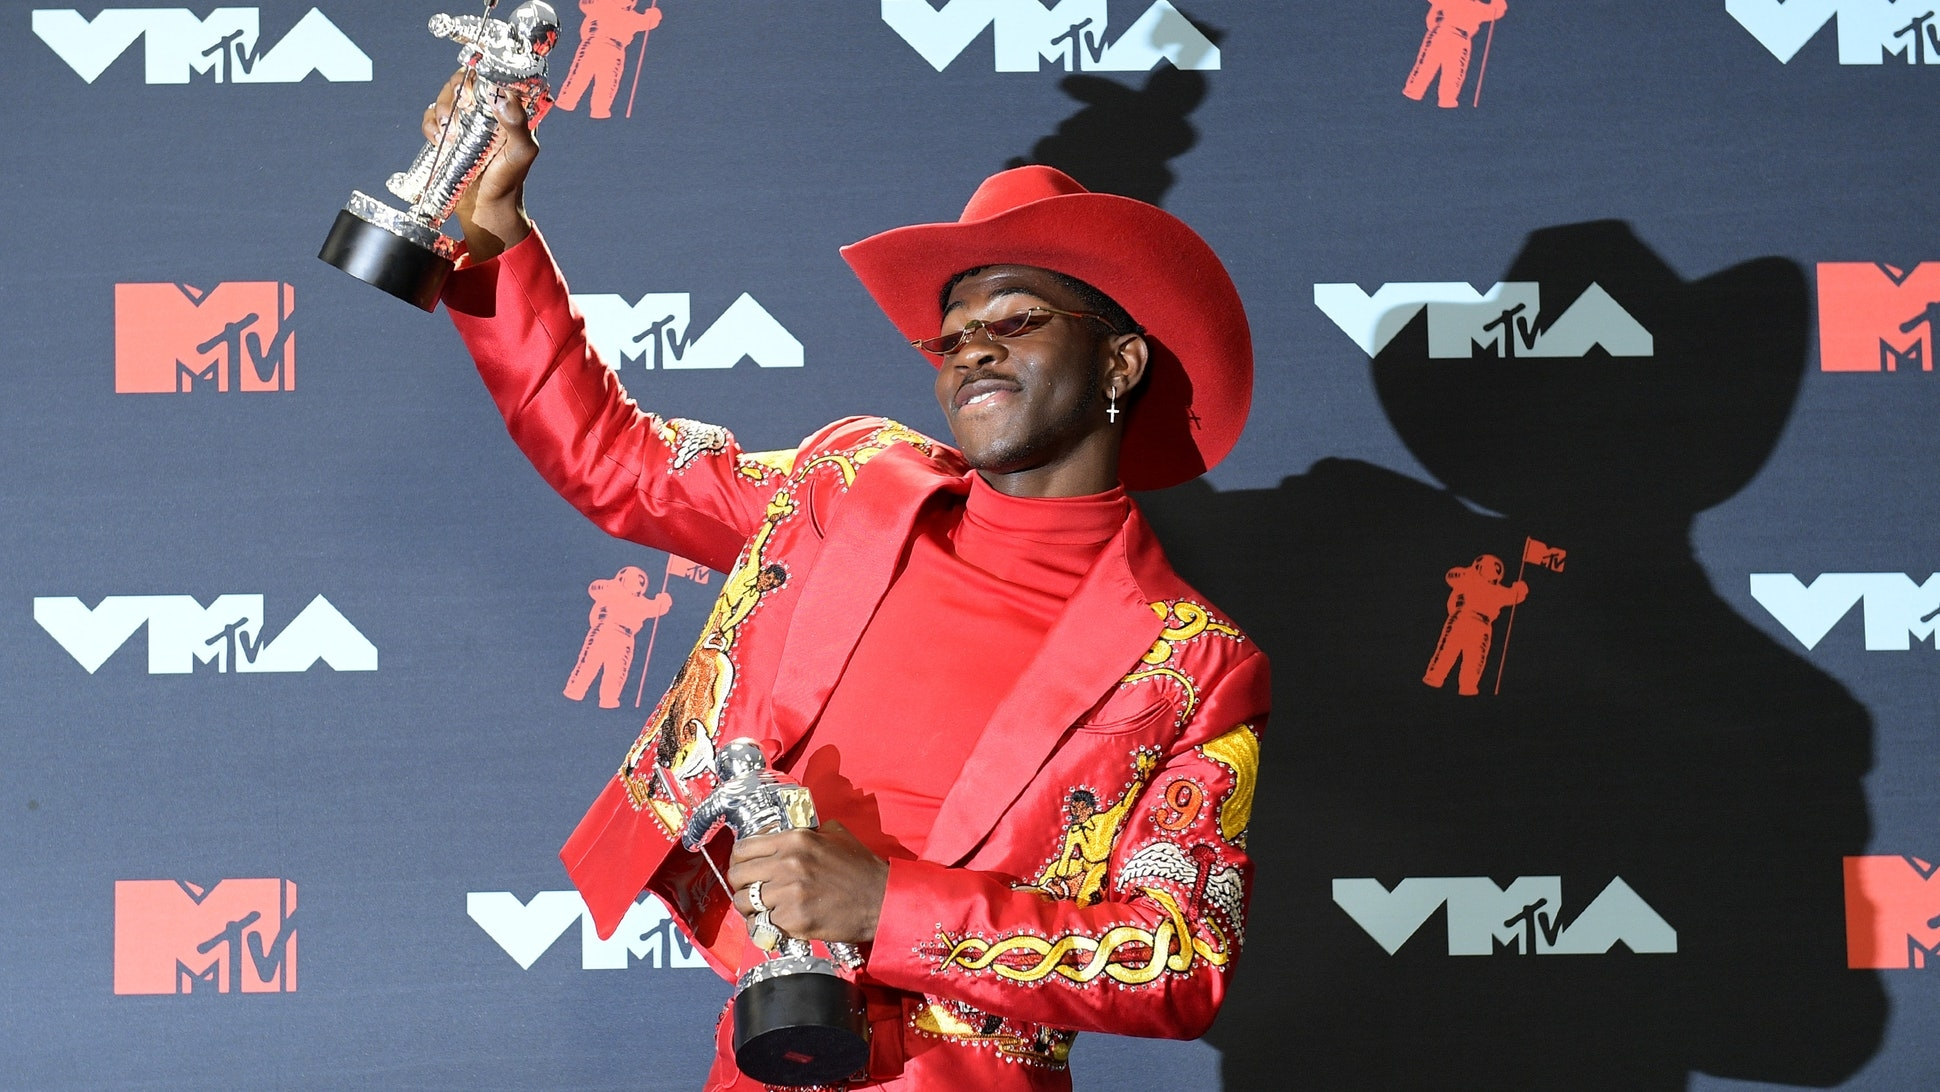 Lil Nas X Had A Very Millennial Response To Being Asked About His Love Life